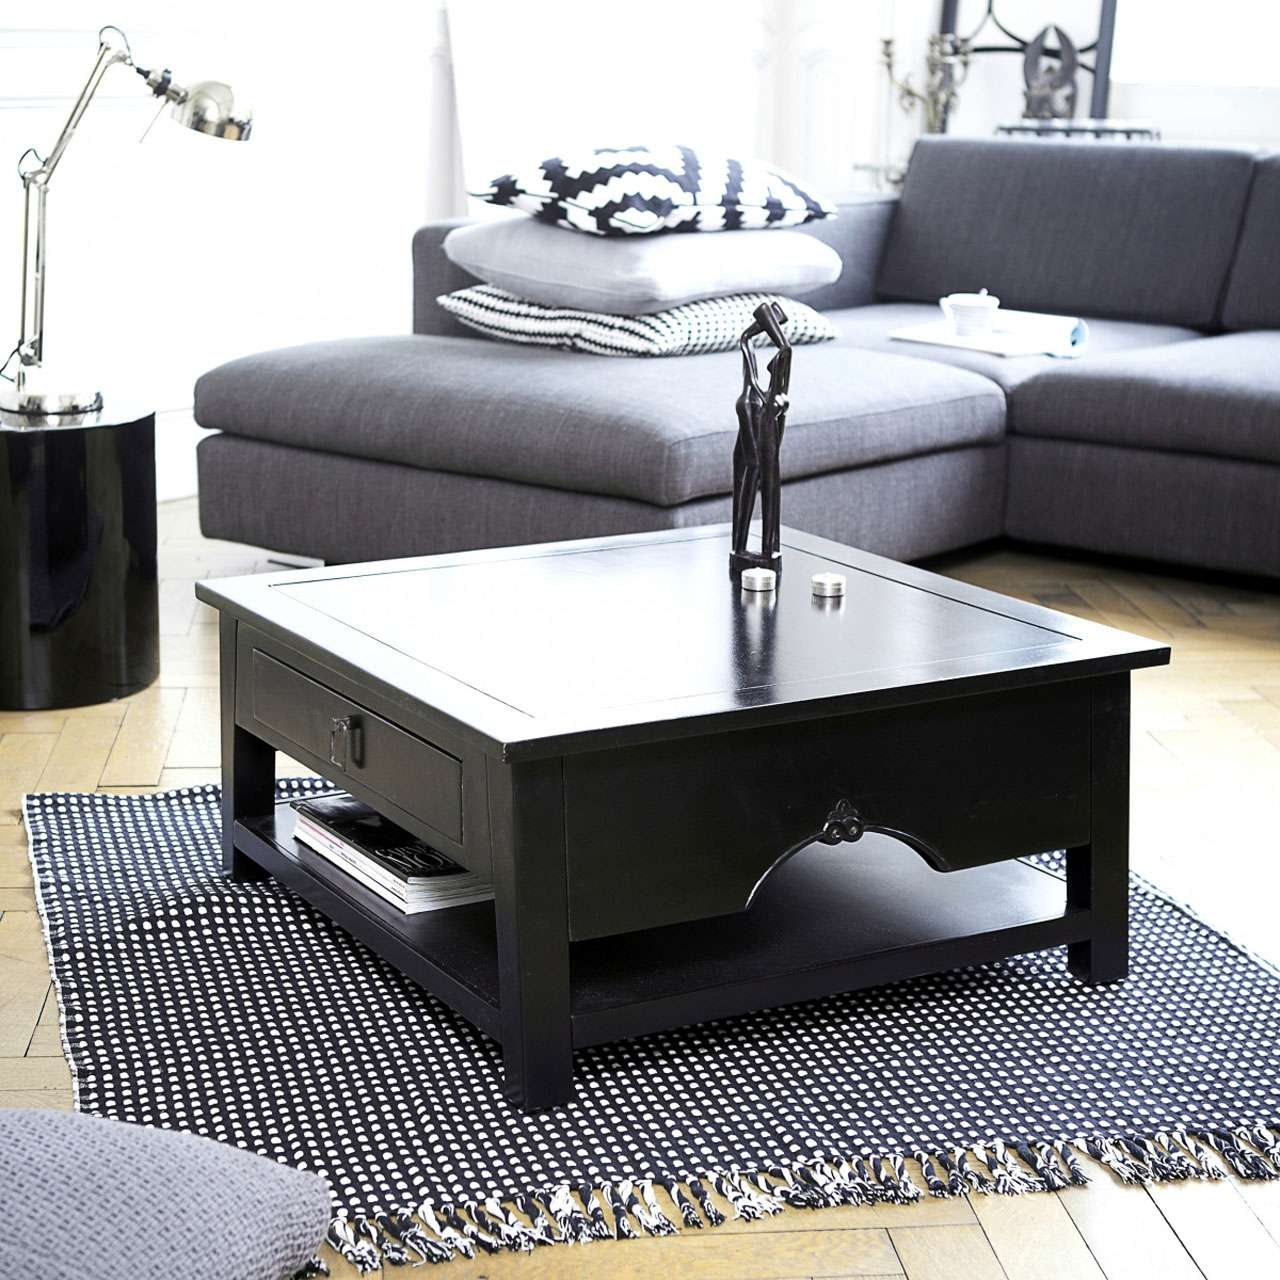 Square Coffee Table As Your Home Furnishing – Chocoaddicts Within Most Recent Square Black Coffee Tables (View 7 of 20)